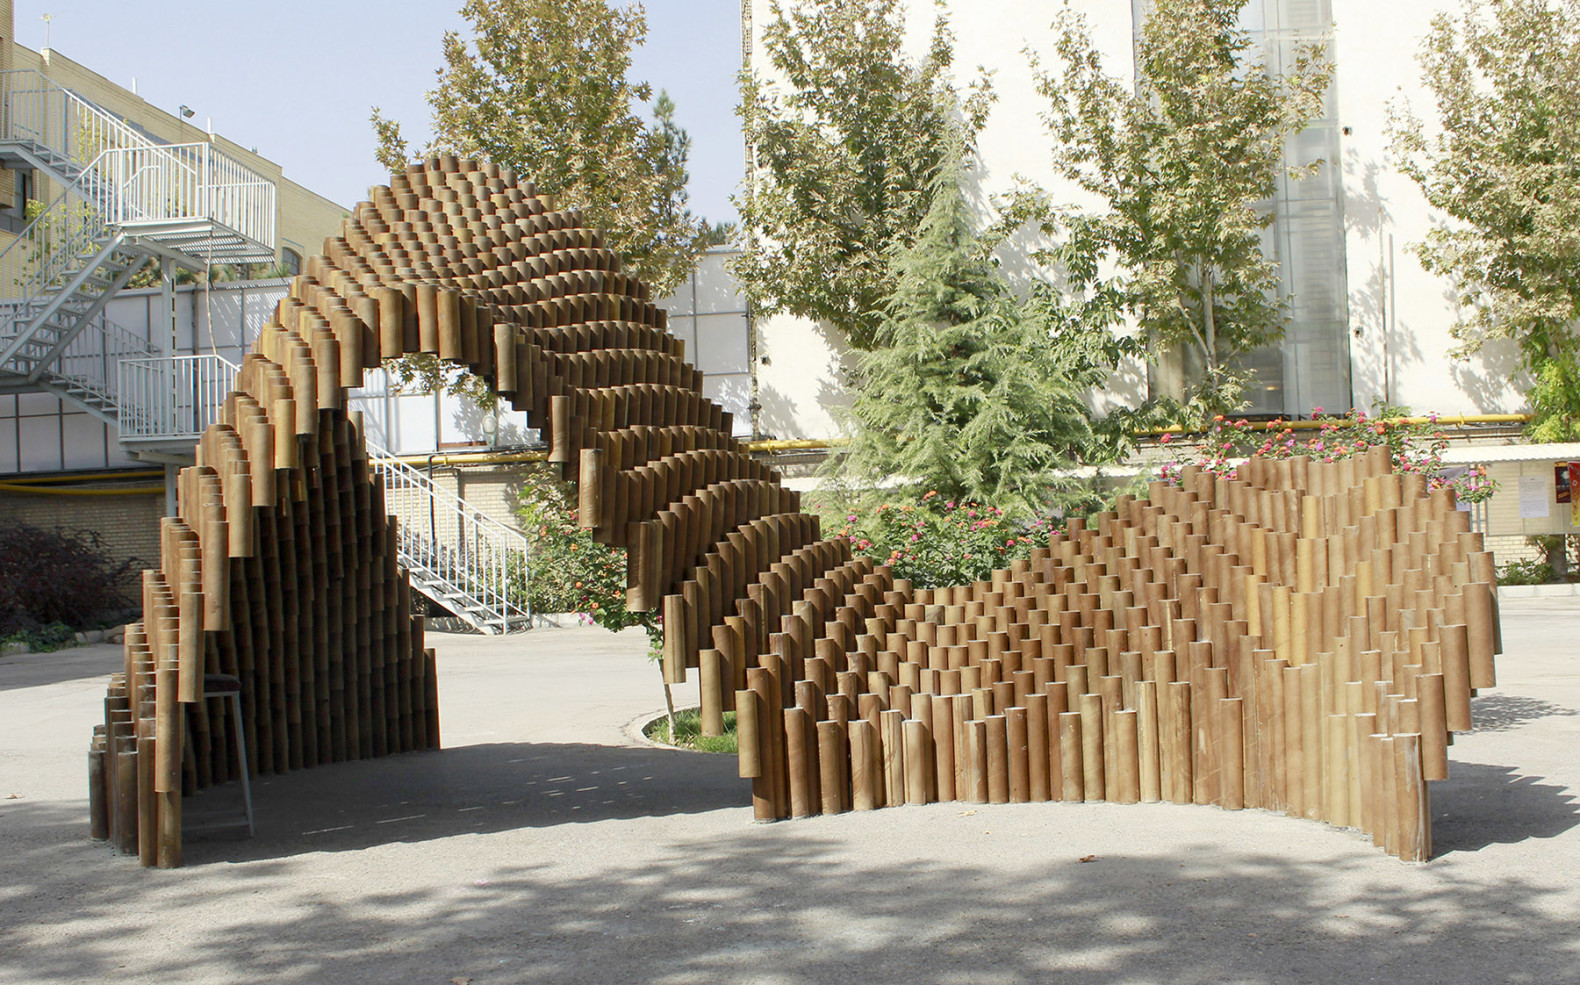 PIPE pavilion is made from over one thousand recycled ...